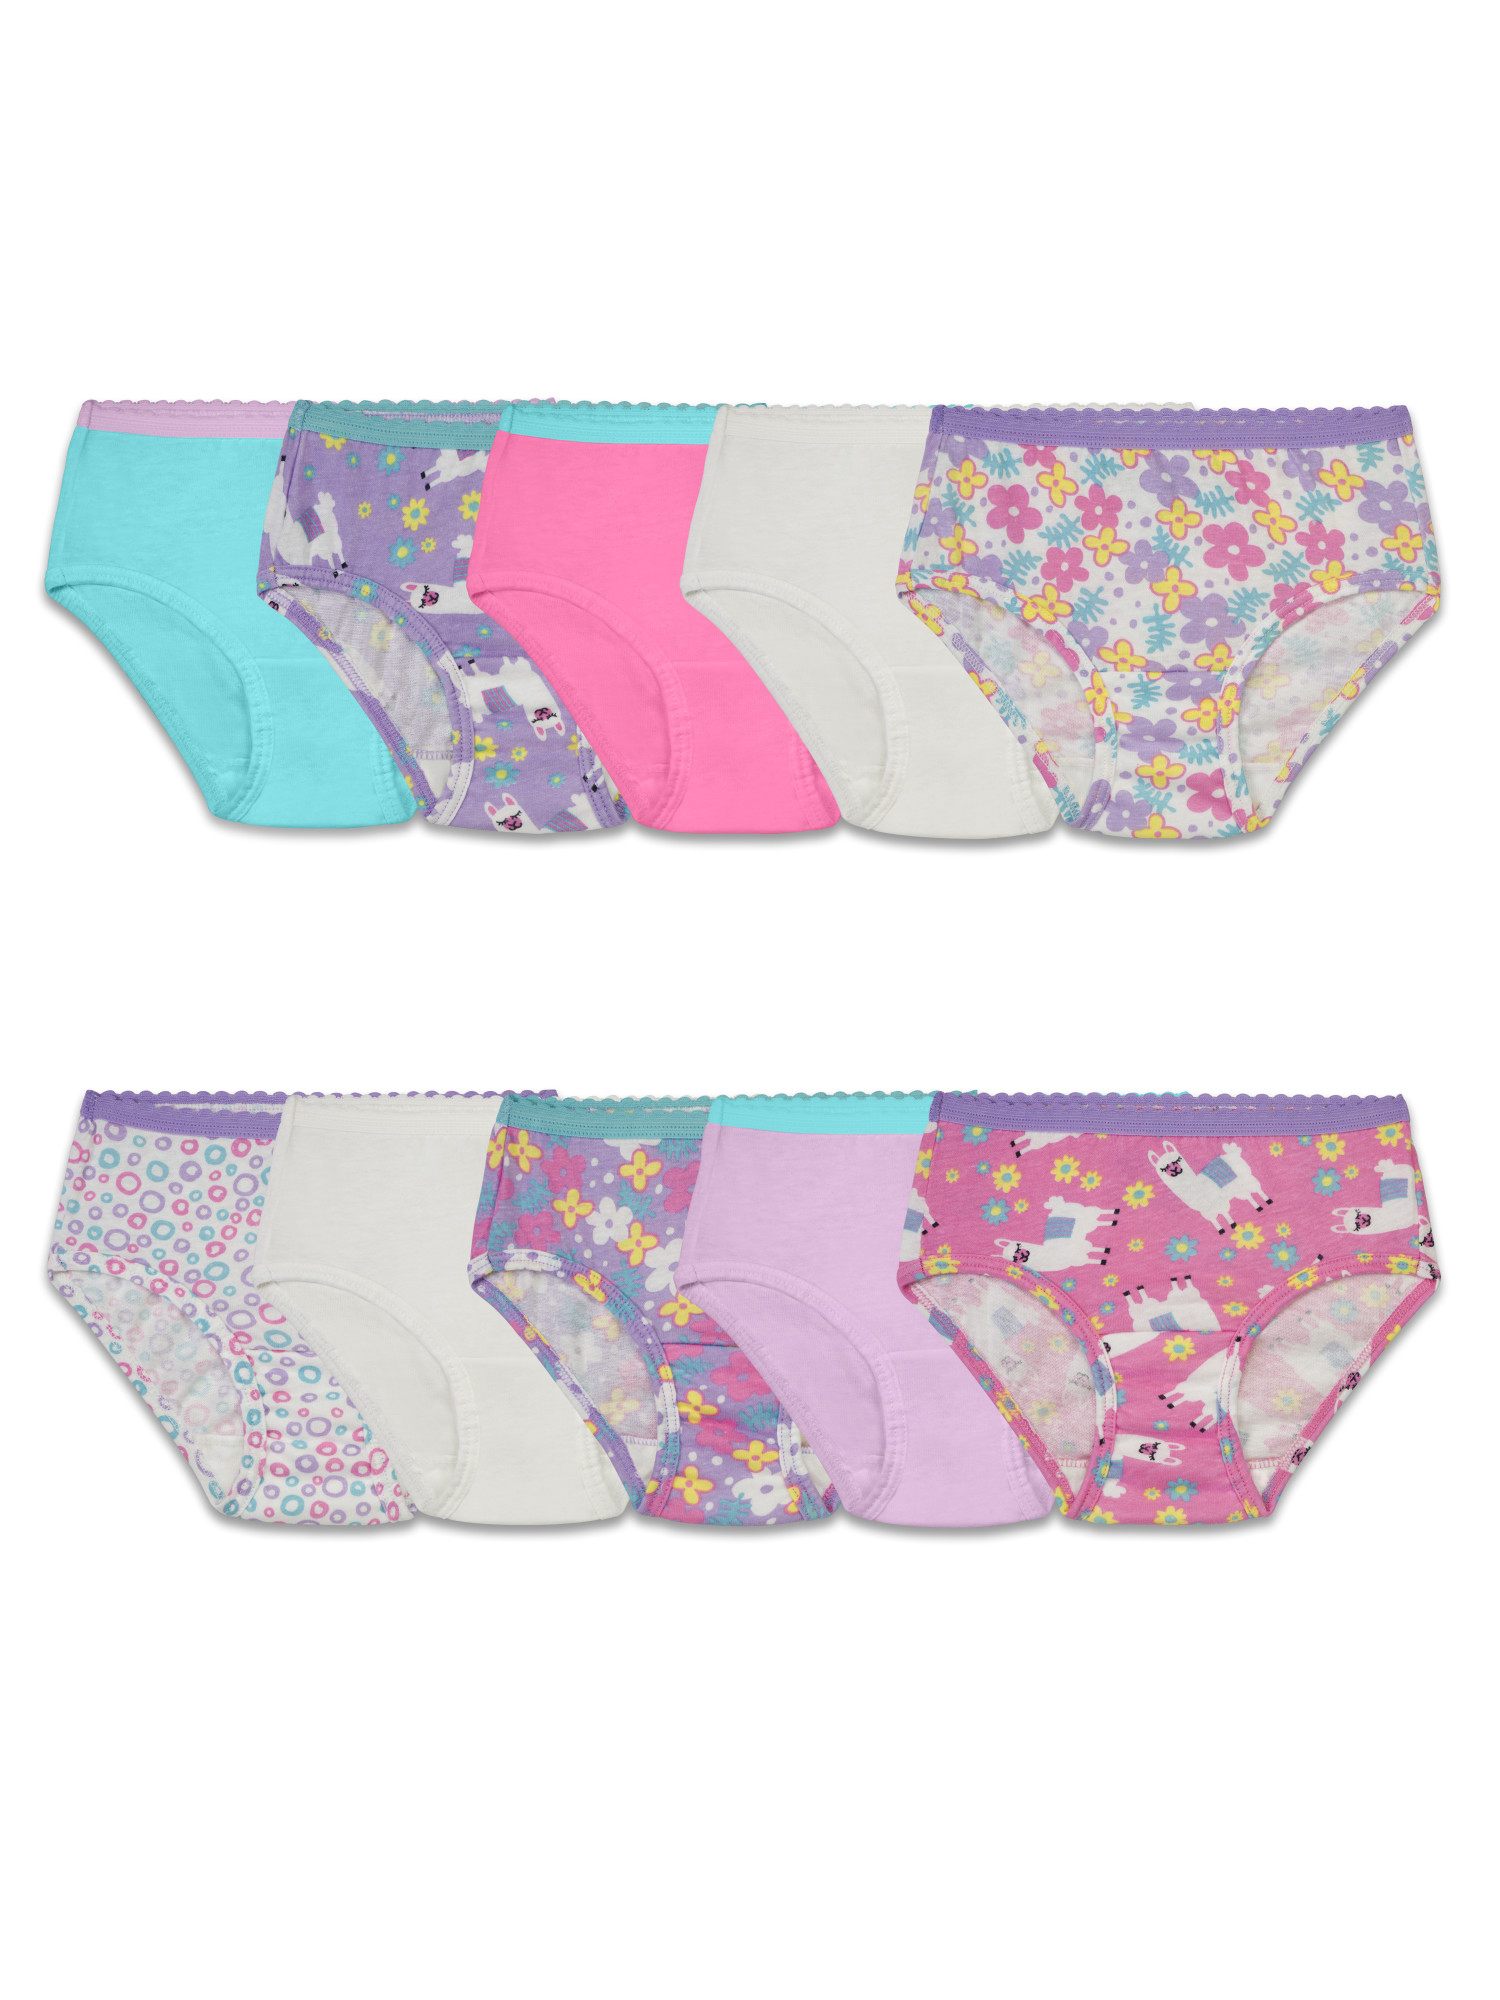 Assorted Cotton Brief Underwear, 10 Pack (Toddler Girl)